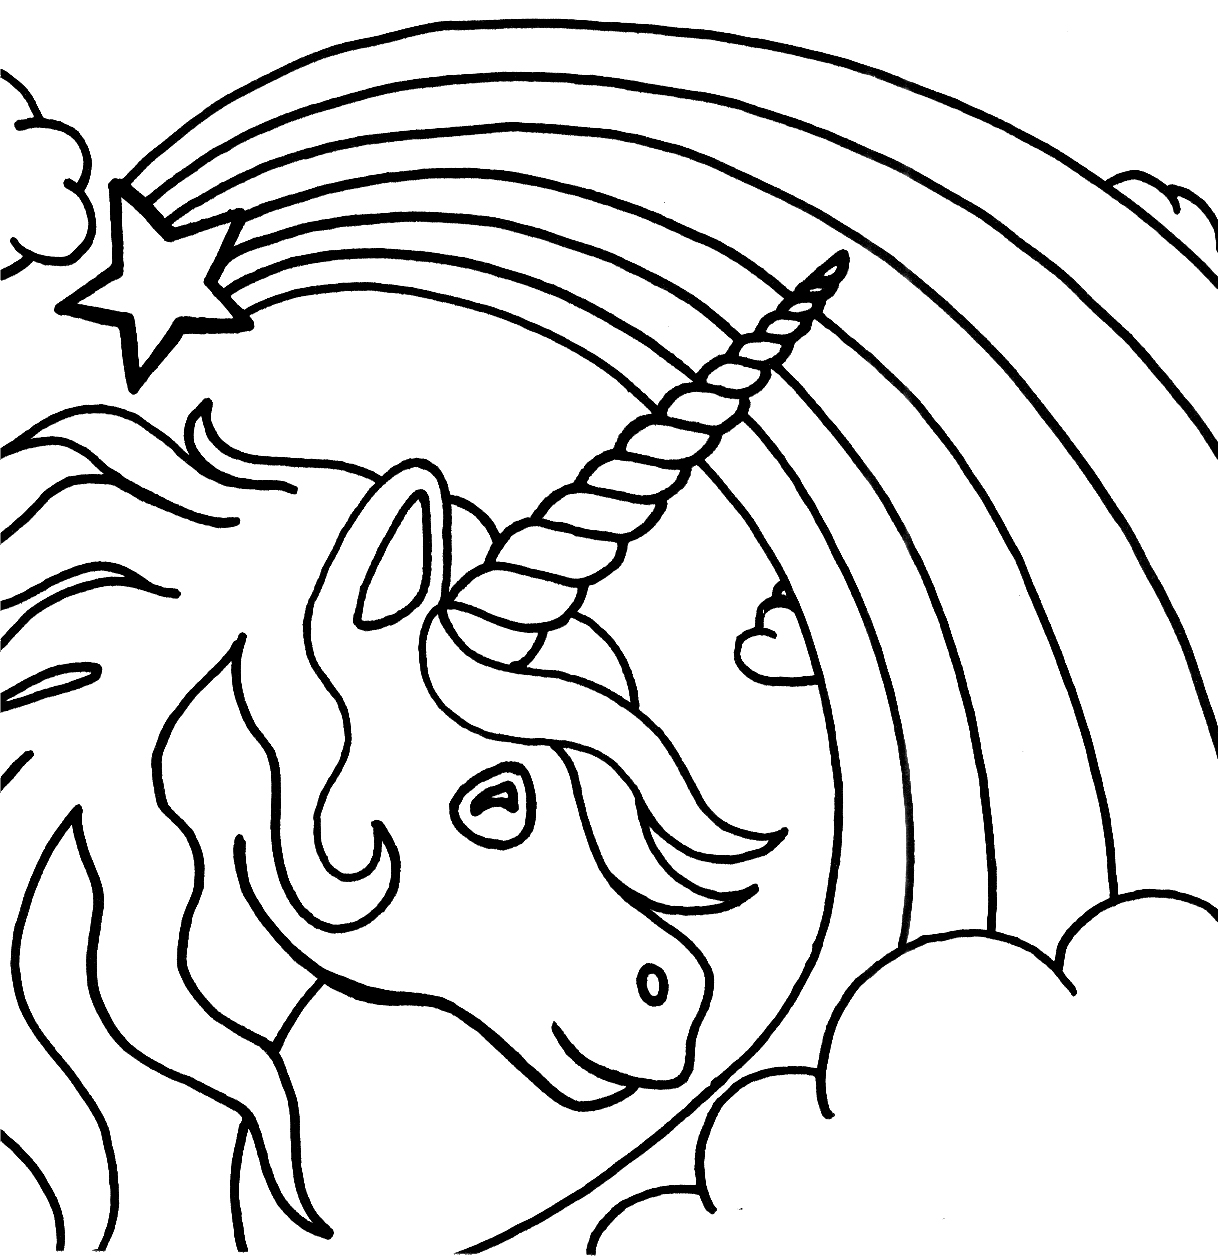 Online kid coloring games - Unicorn Coloring Pages For Kids